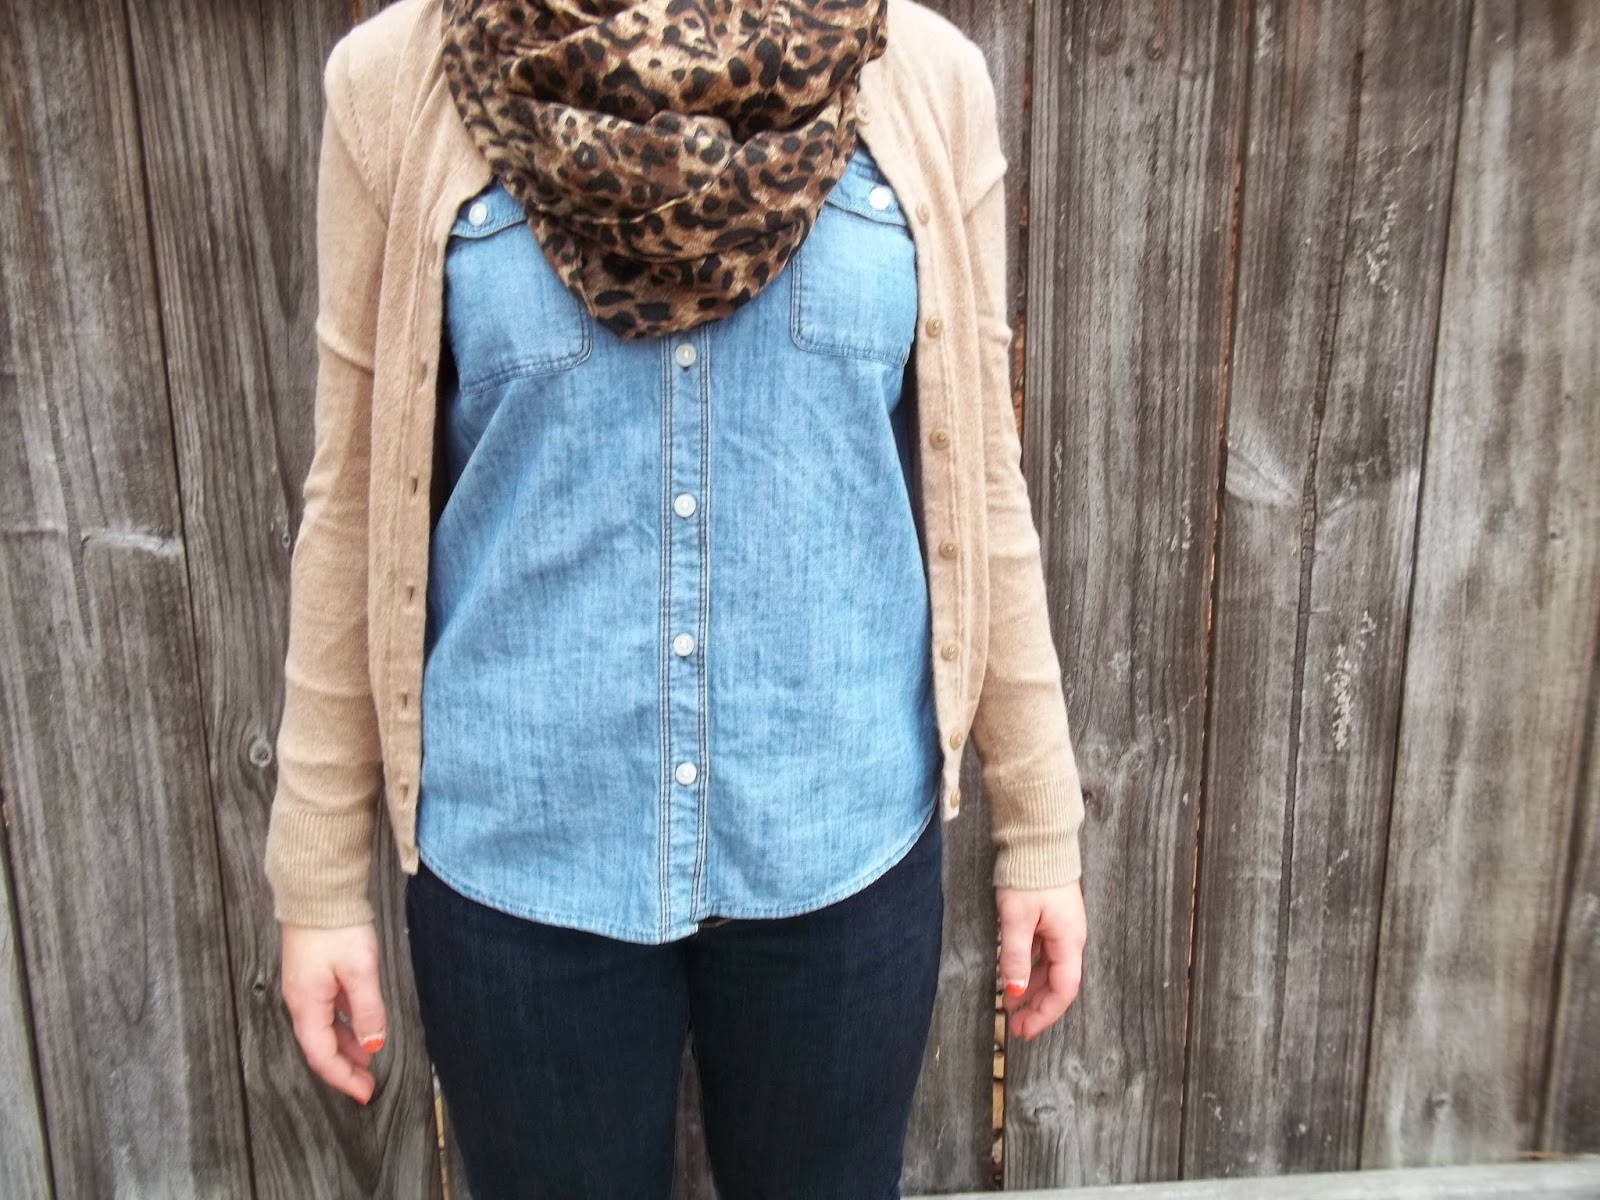 Leopard scarf, chambray shirt, jeans, tan cardigan, brown boots.